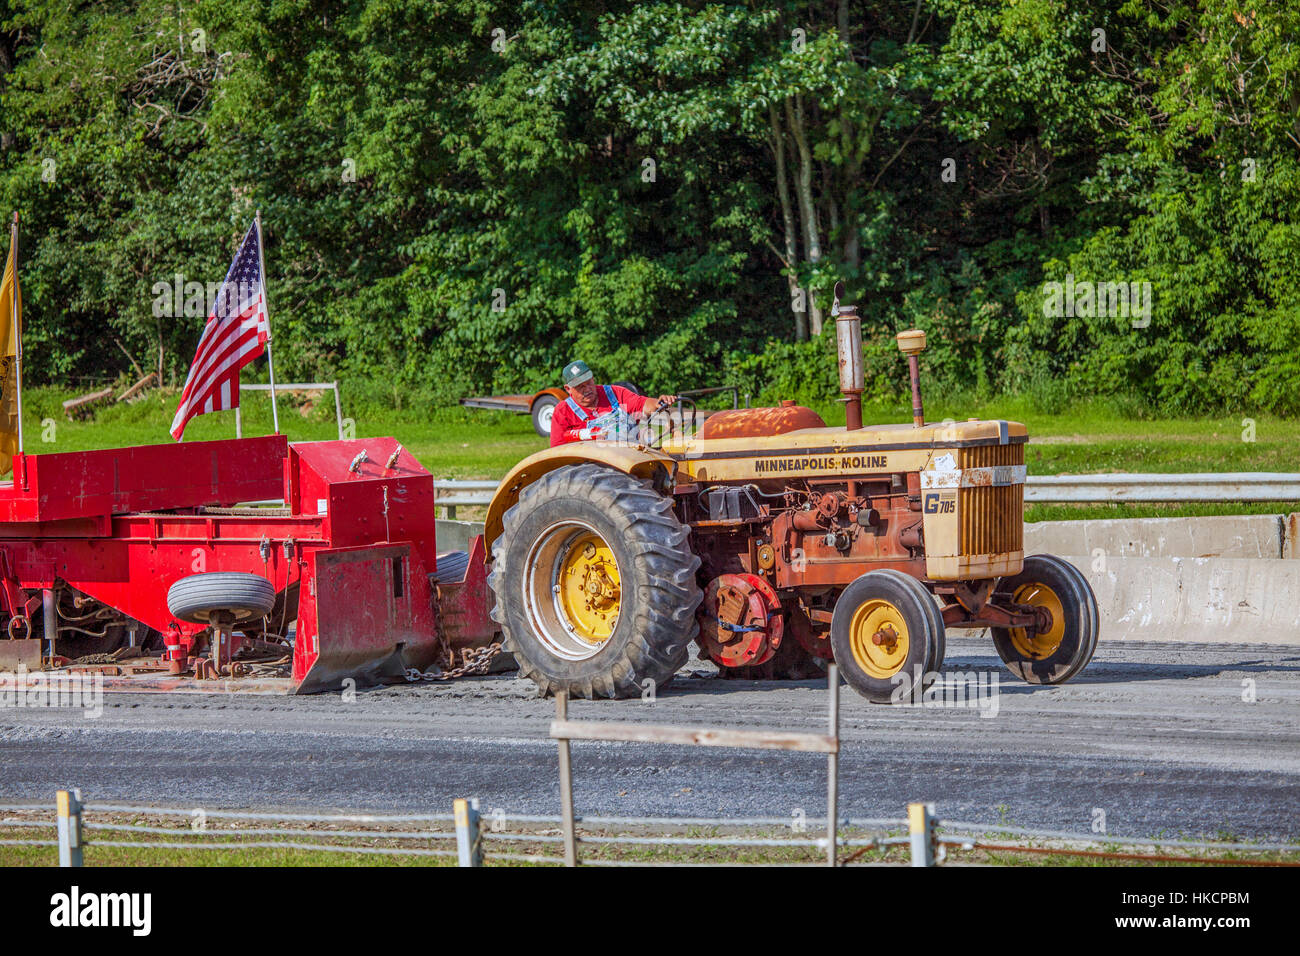 Tractor Pulls Stock Photos & Tractor Pulls Stock Images - Alamy